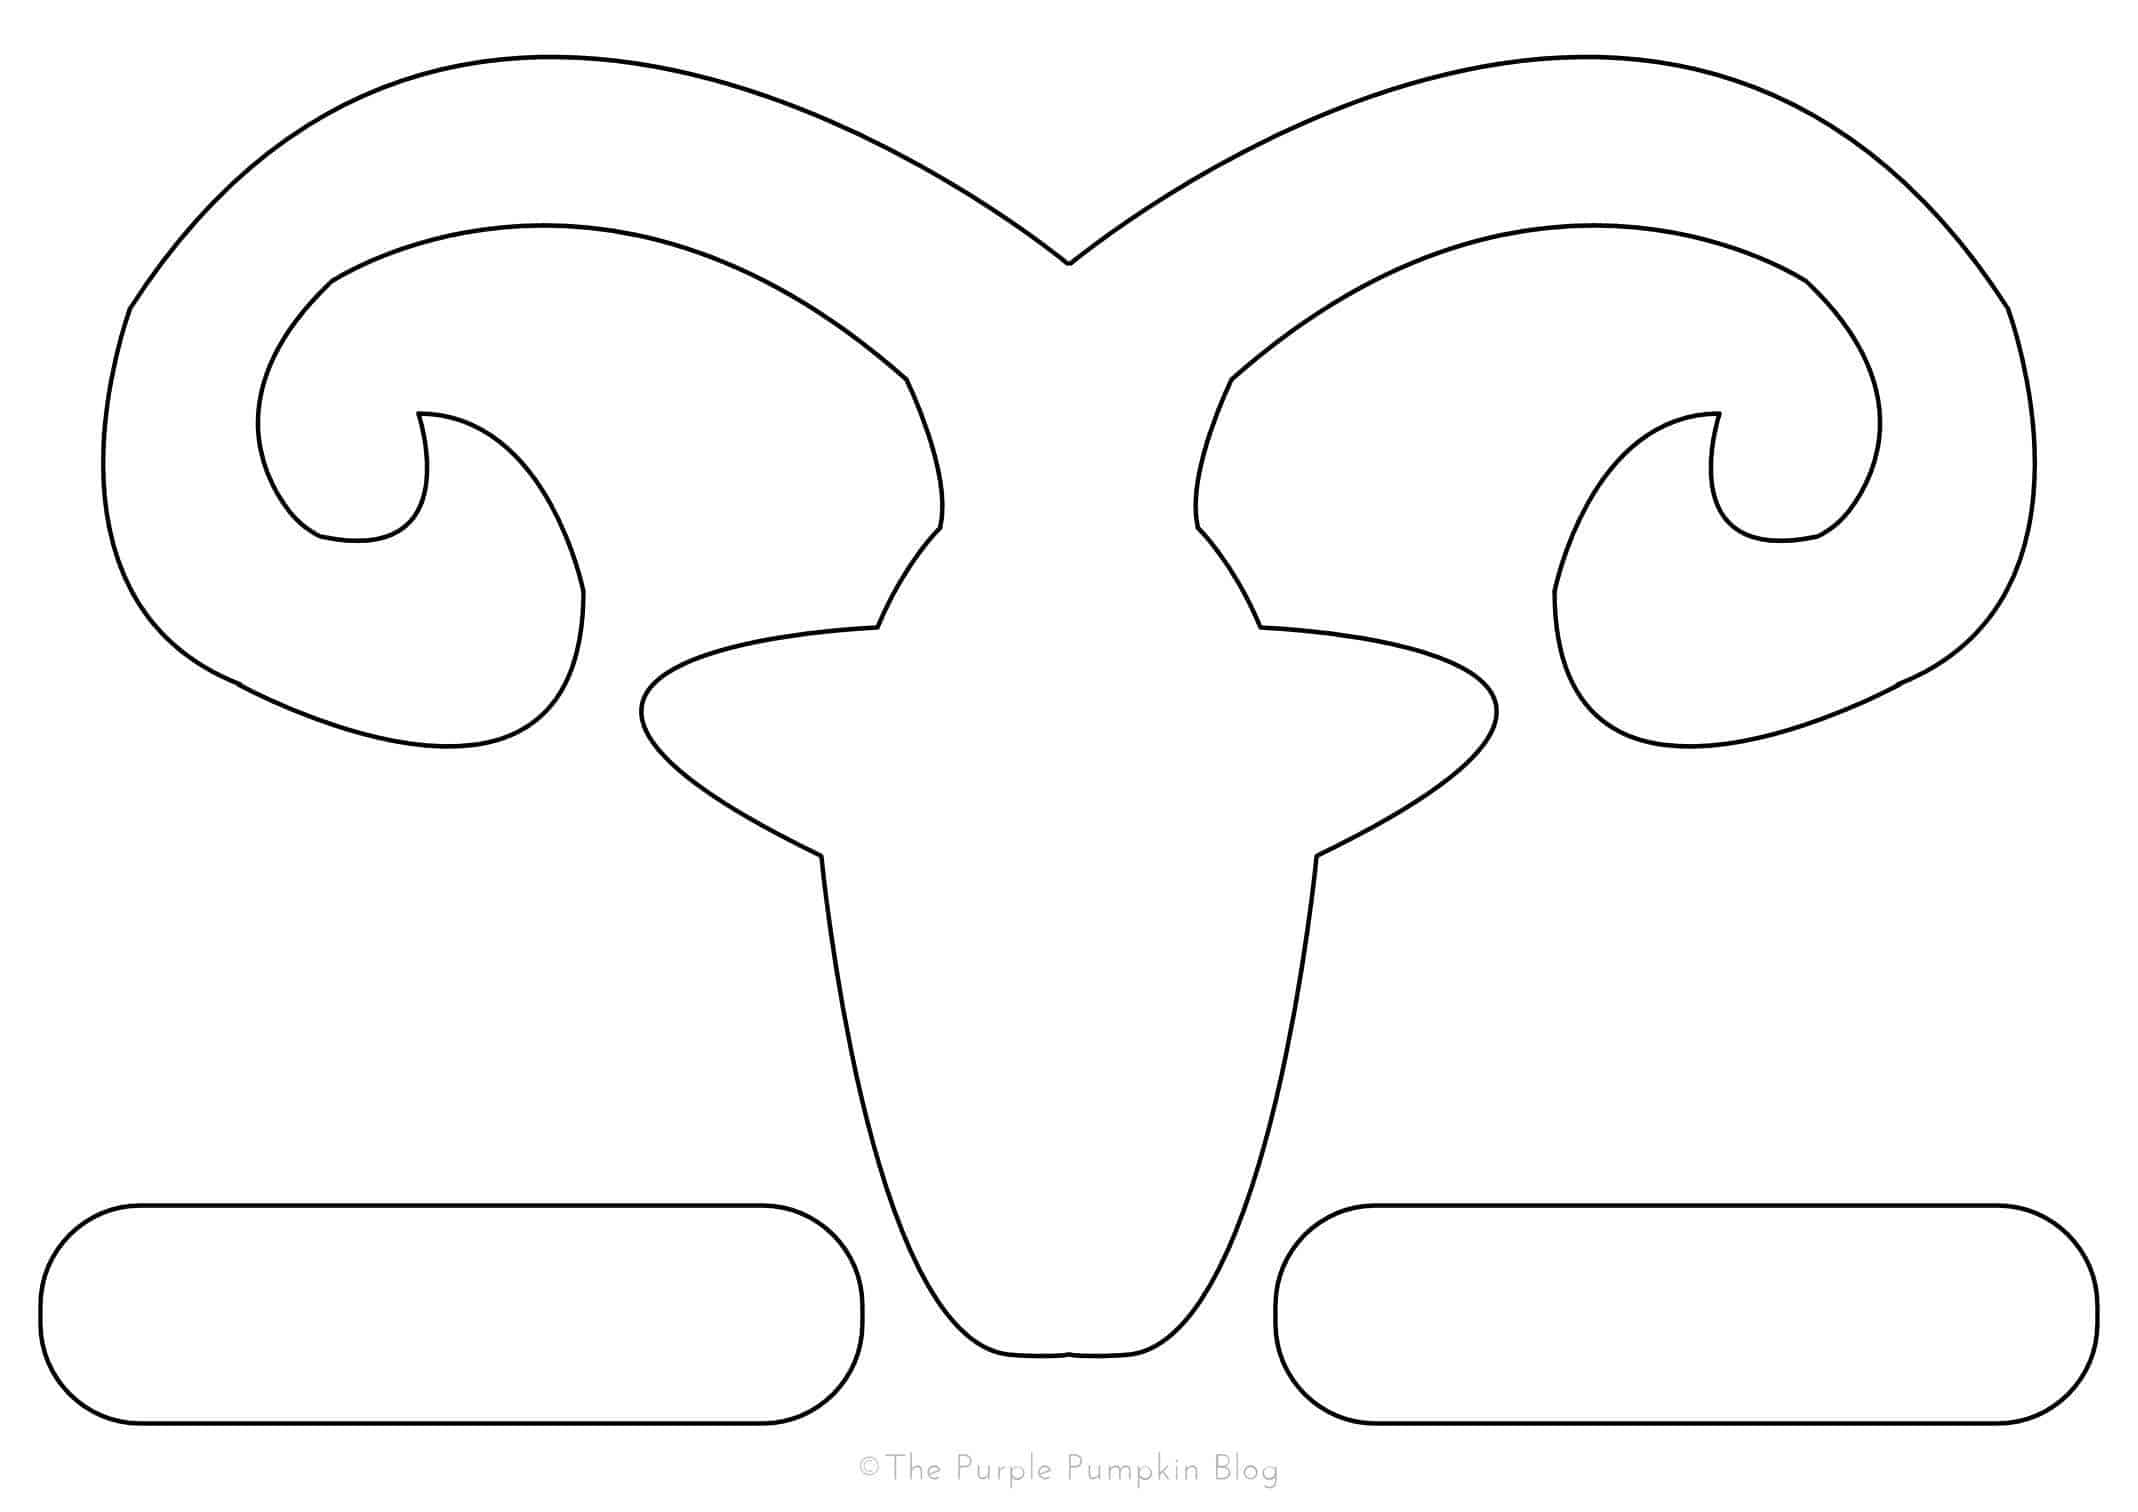 Chinese new year goat sheep outline template the purple for Cardboard sheep template